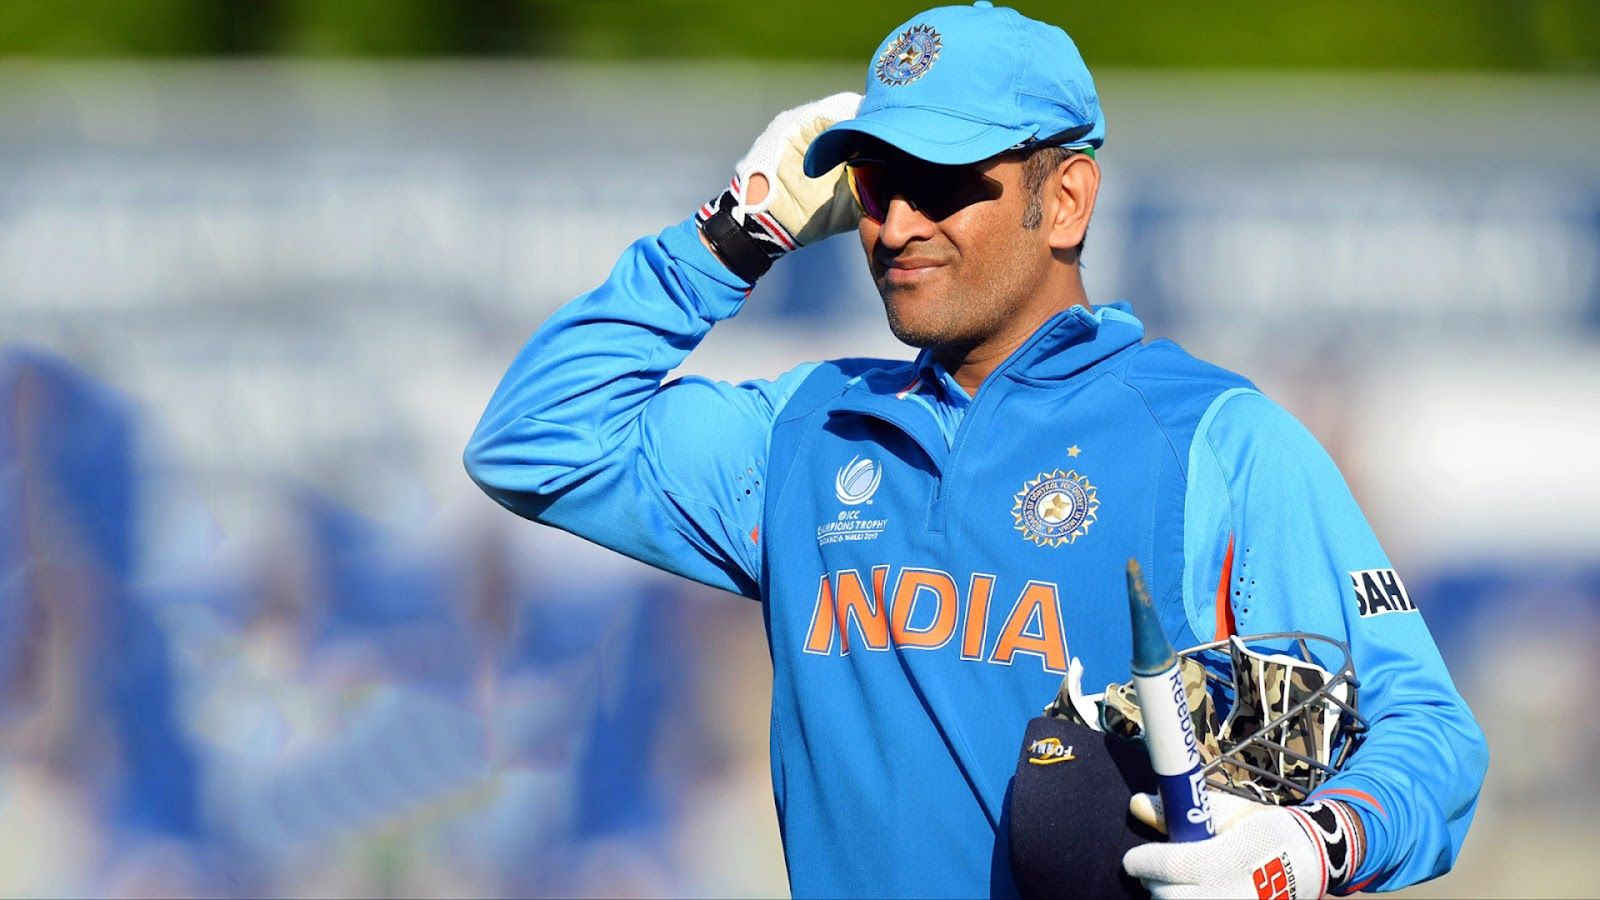 Mahendra Singh Dhoni Wallpapers HD Download Free 1080p